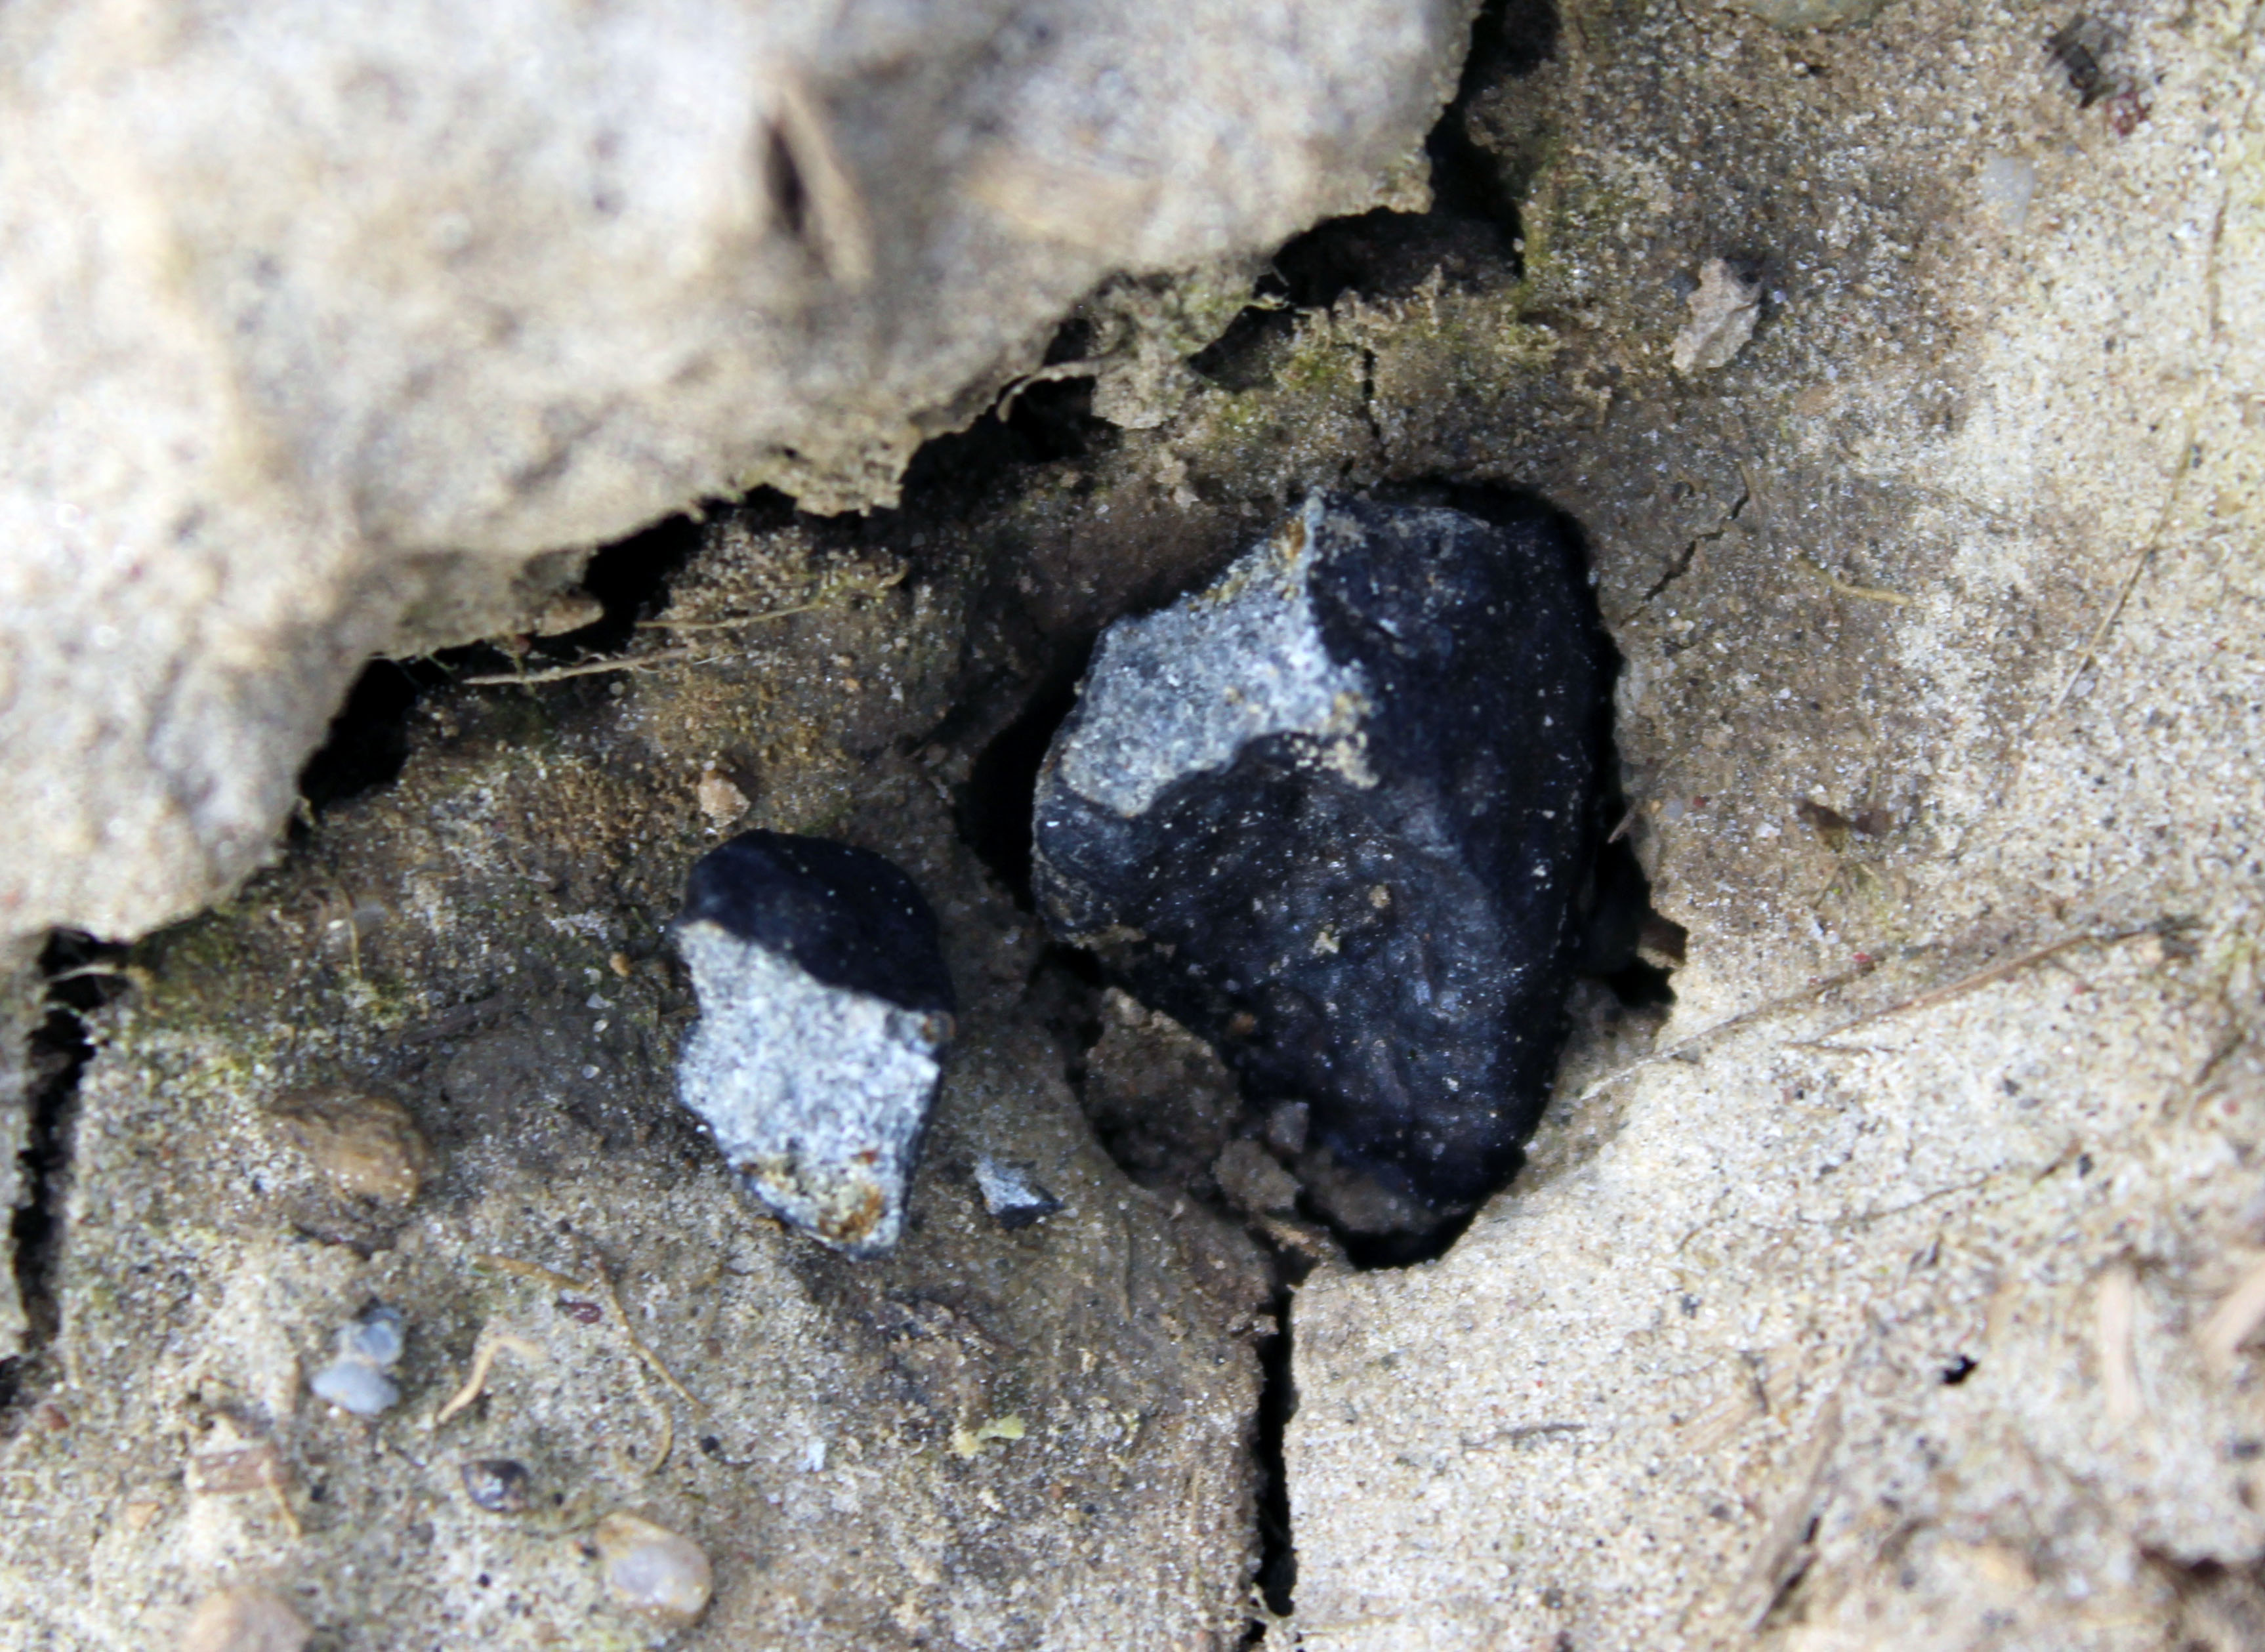 Third Ering meteorite (7.22 g + 0.45 g) in situ (Photo: R. Sporn)